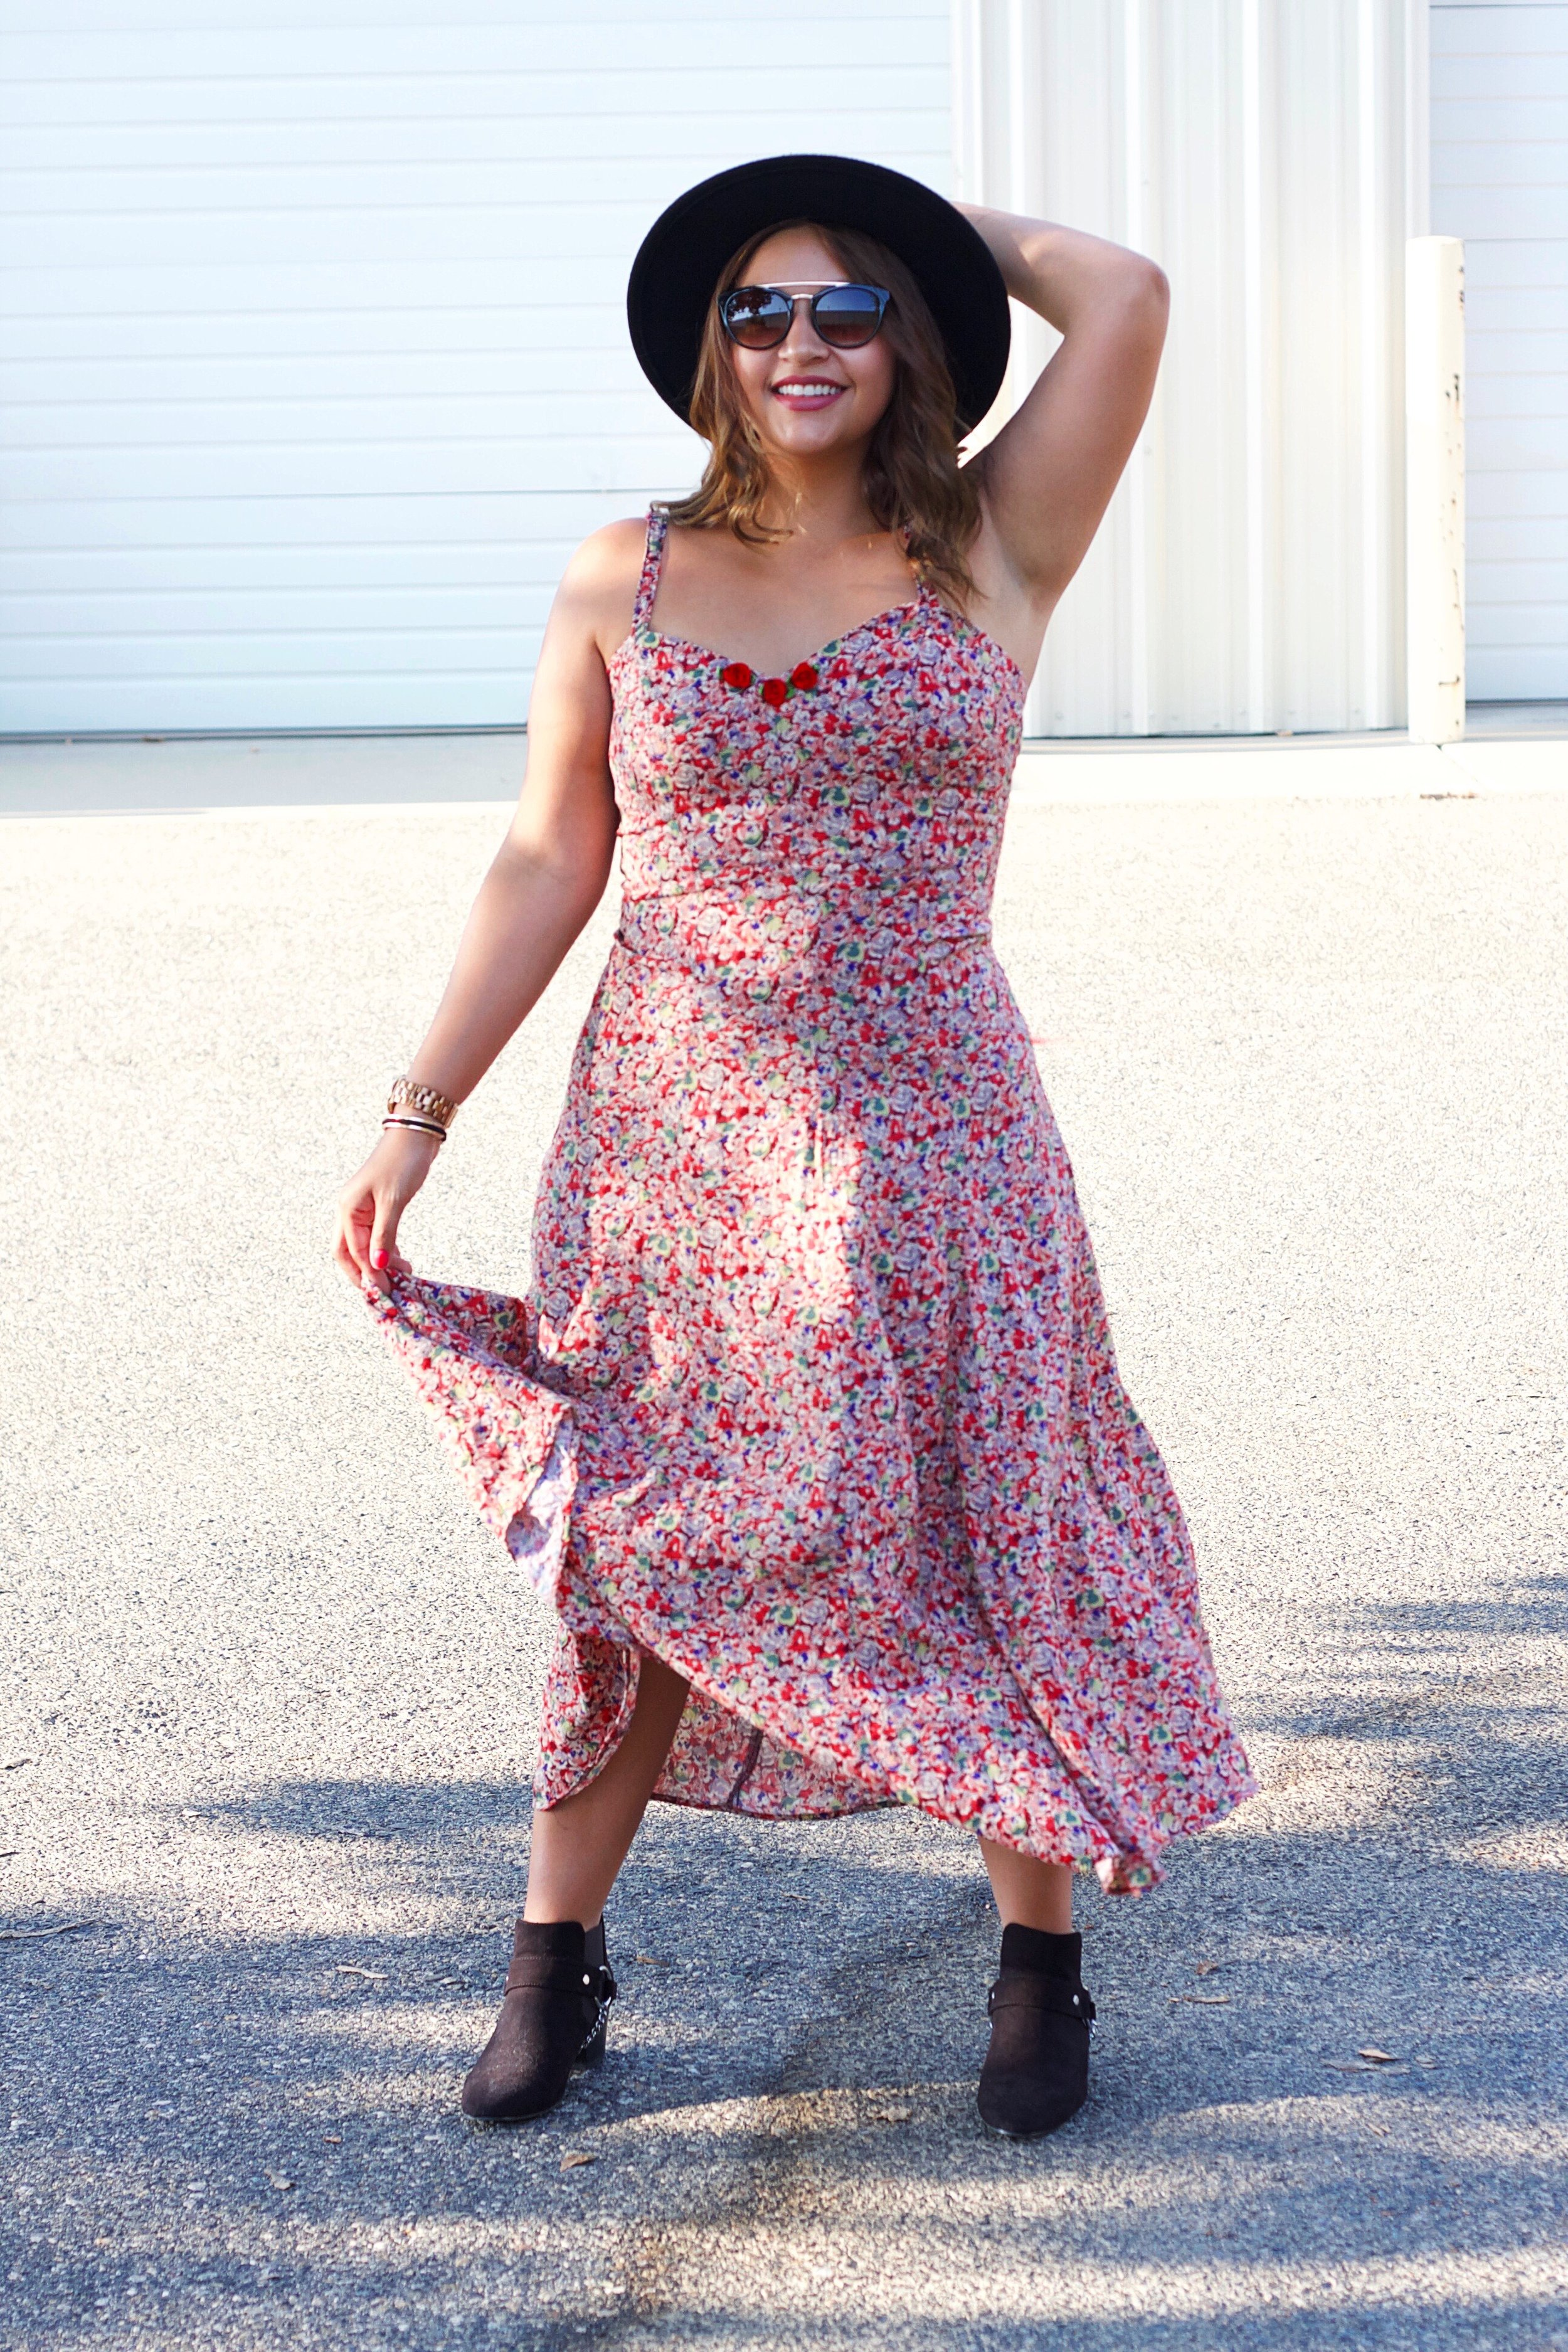 Thifted Fashion. Recycled Fashion Finds, Floral 90's Style Dress